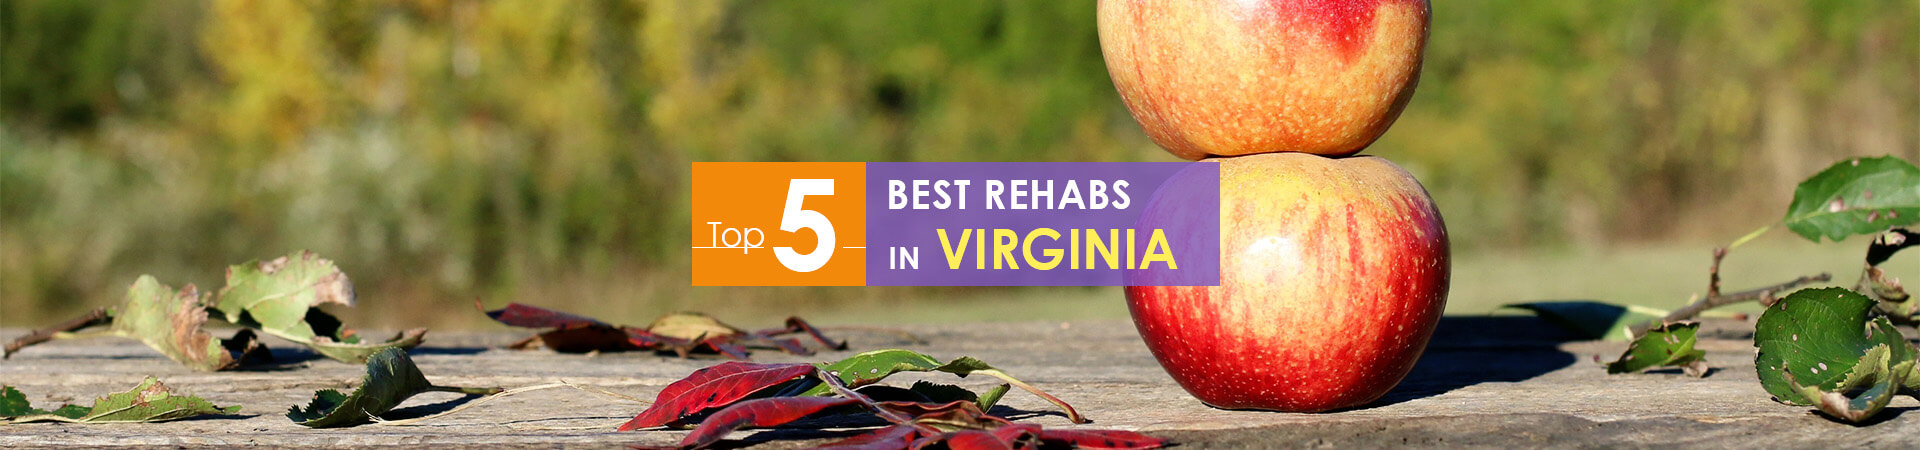 Virginia apples and top 5 rehabs caption